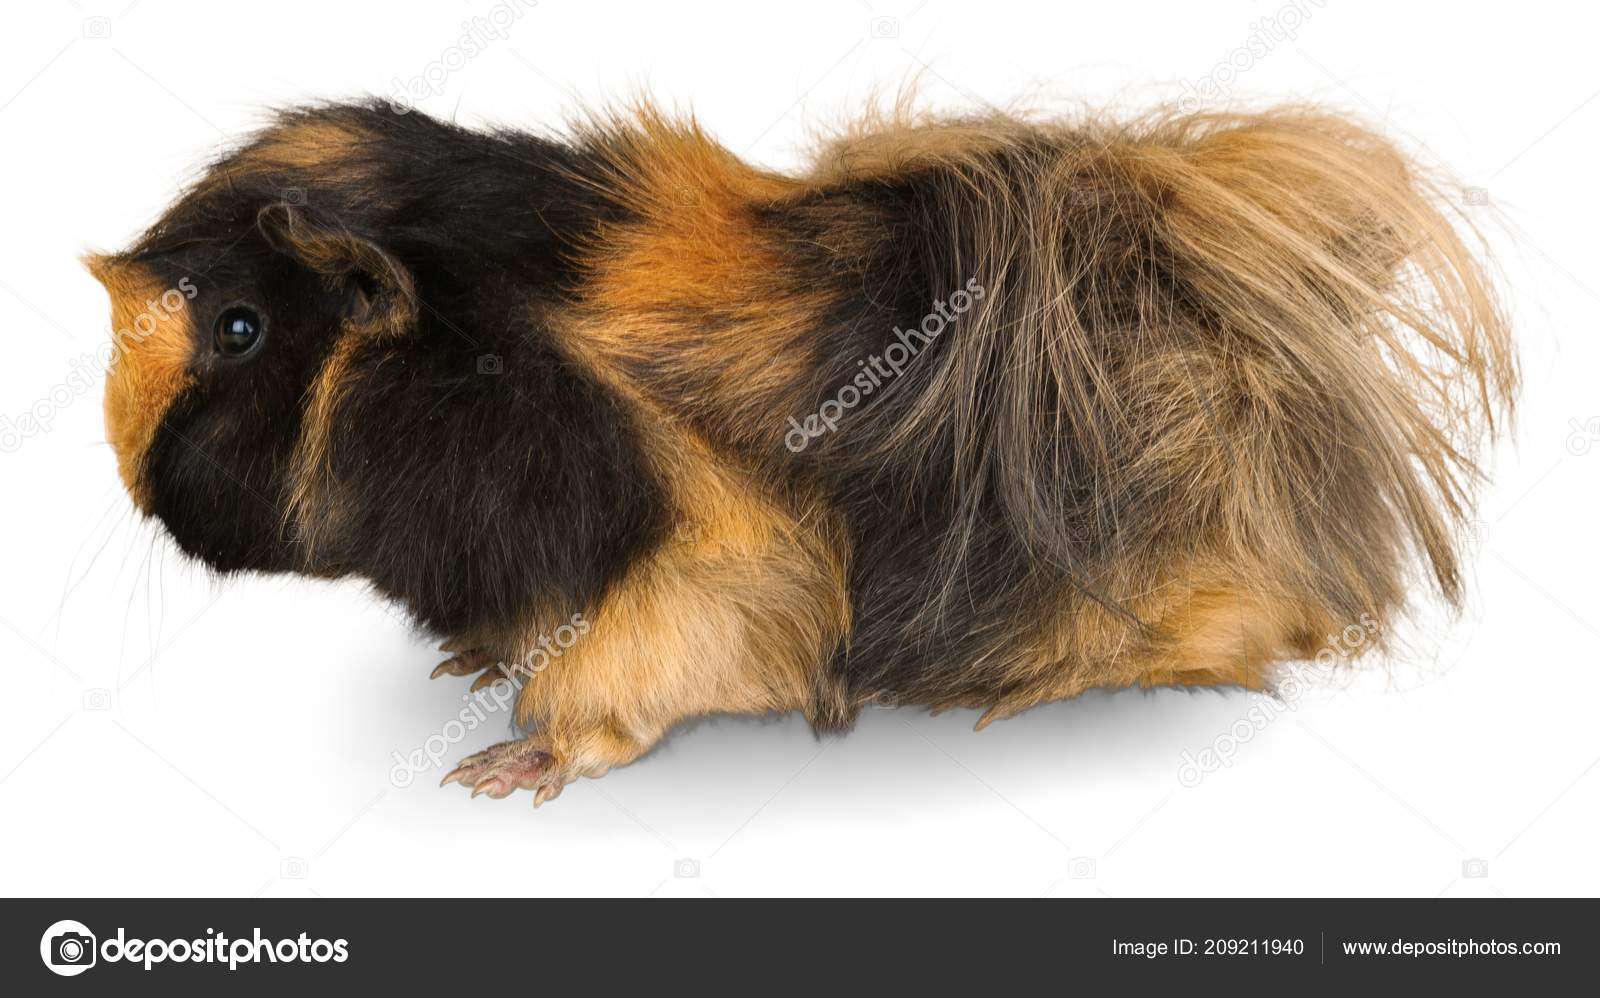 That hairy guinea pig photo